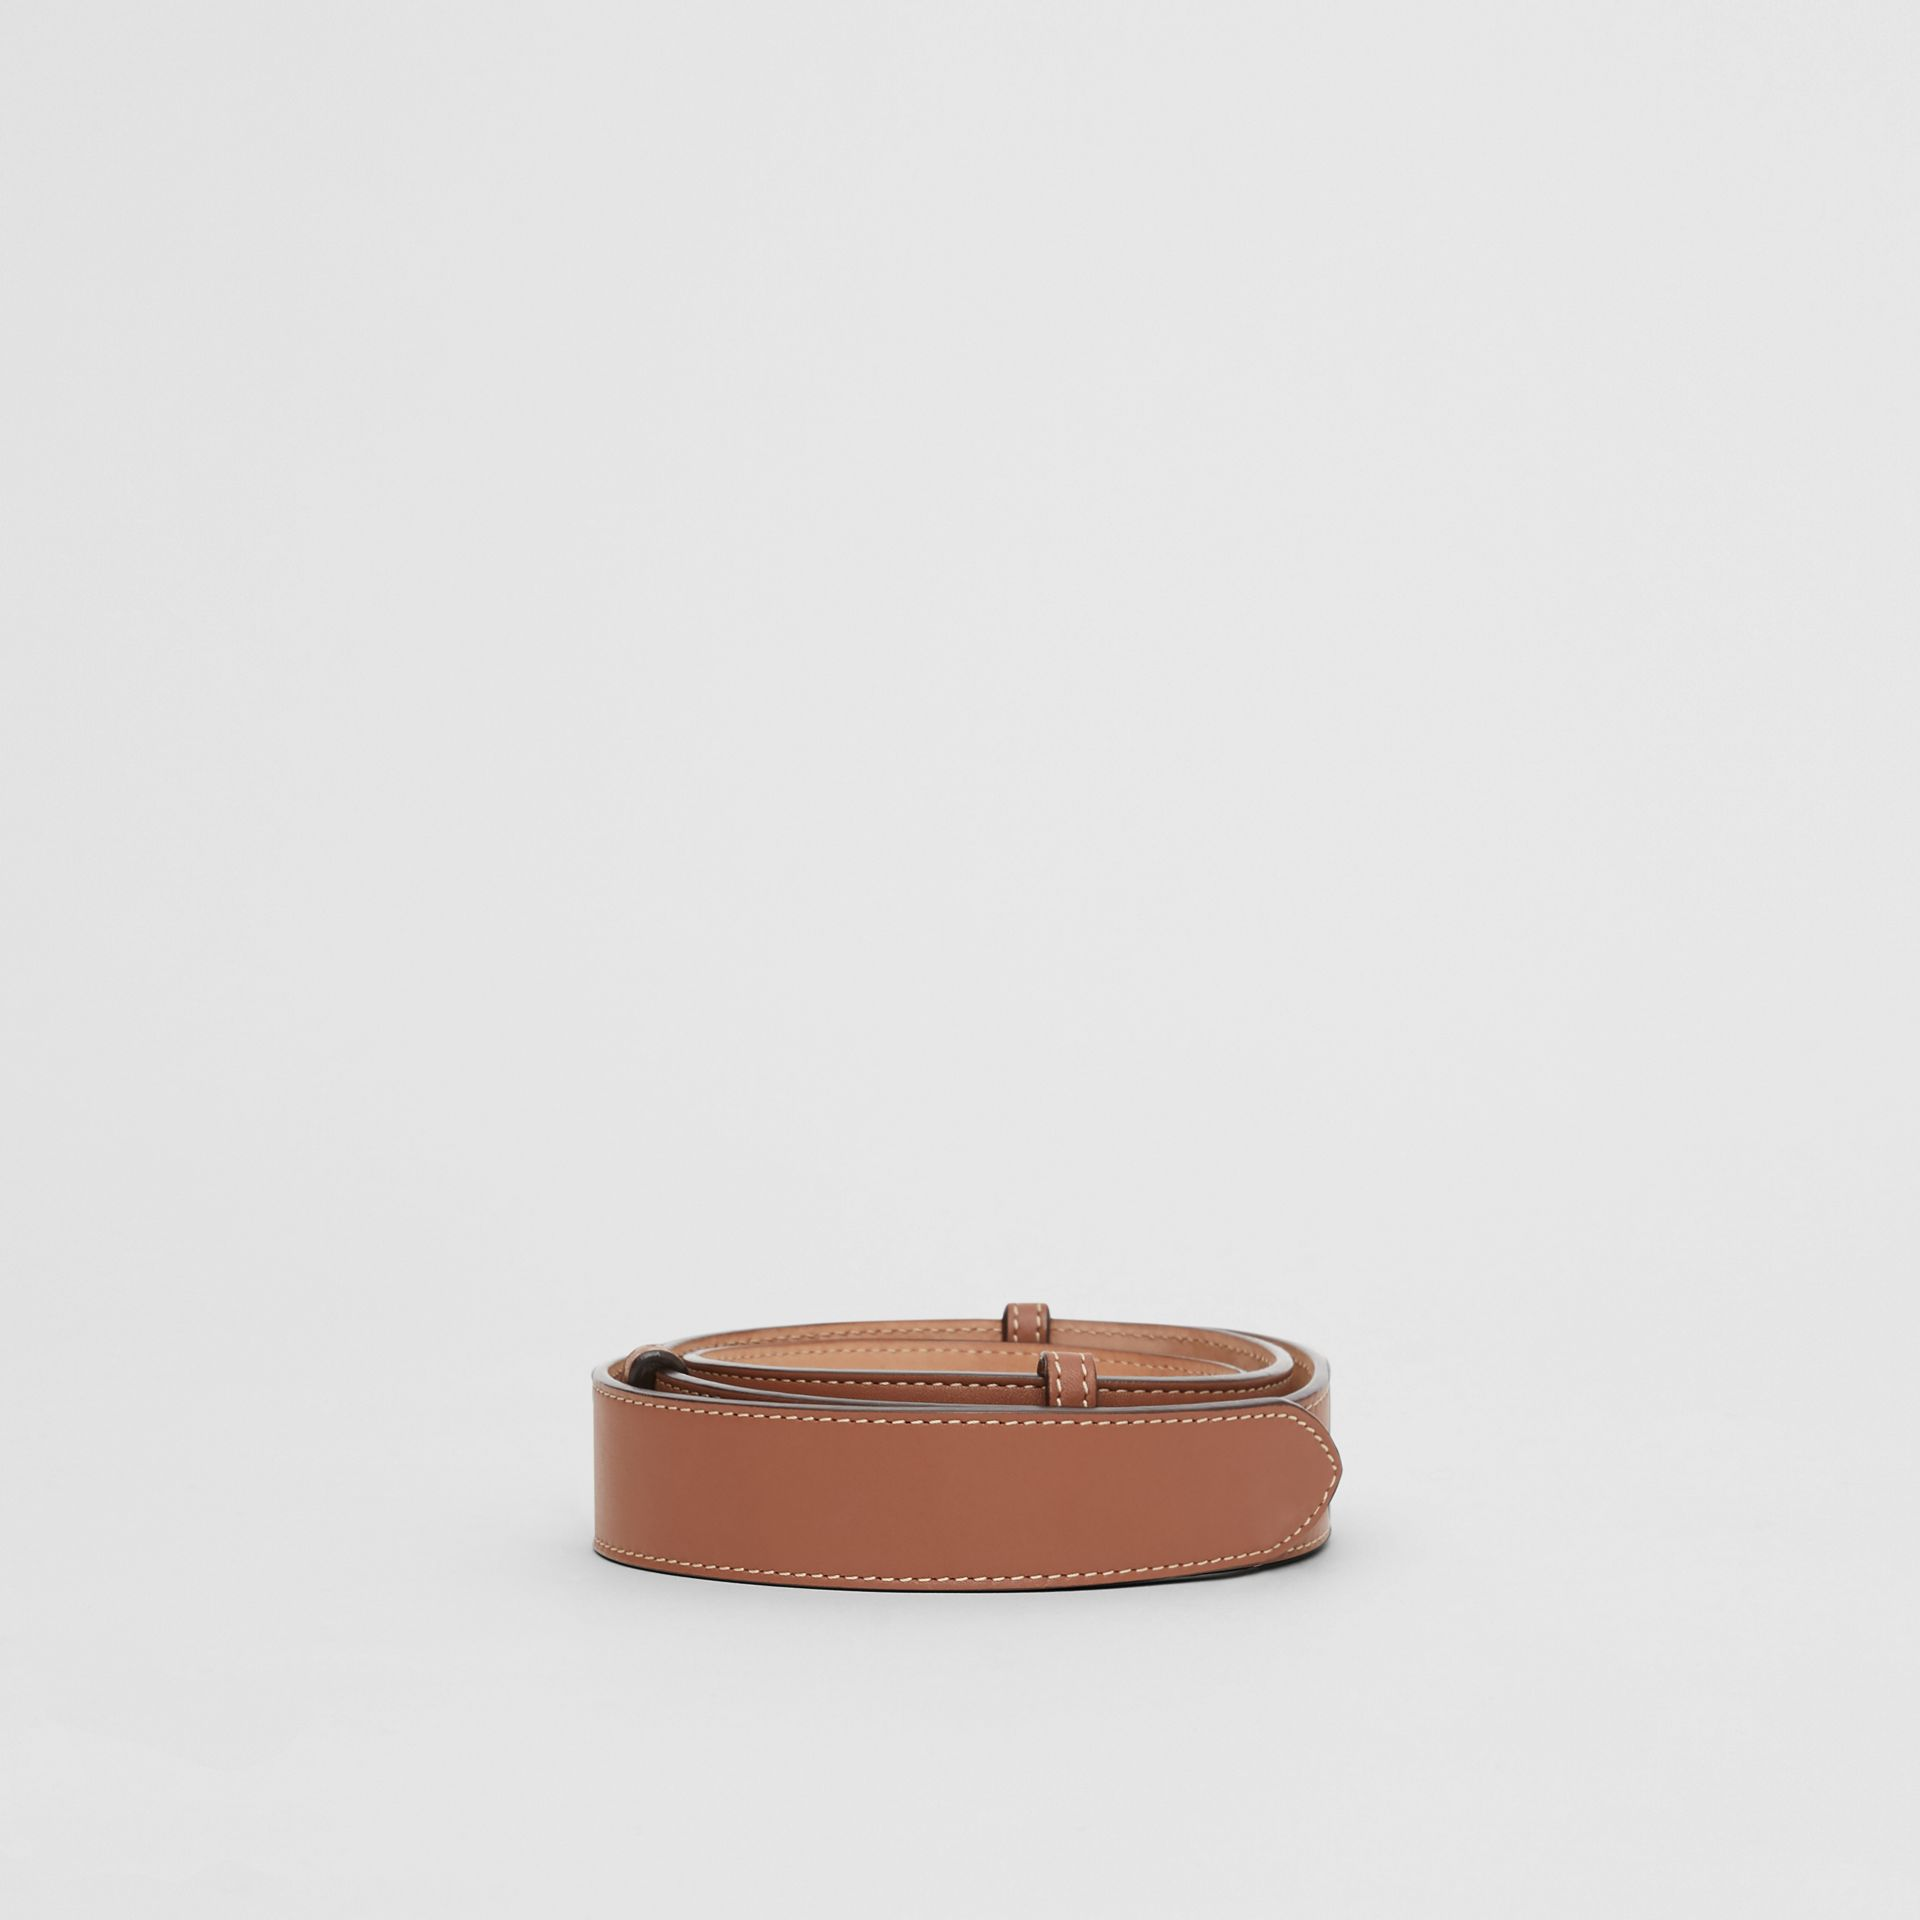 Triple Stud Leather Belt in Malt Brown - Women | Burberry - gallery image 4